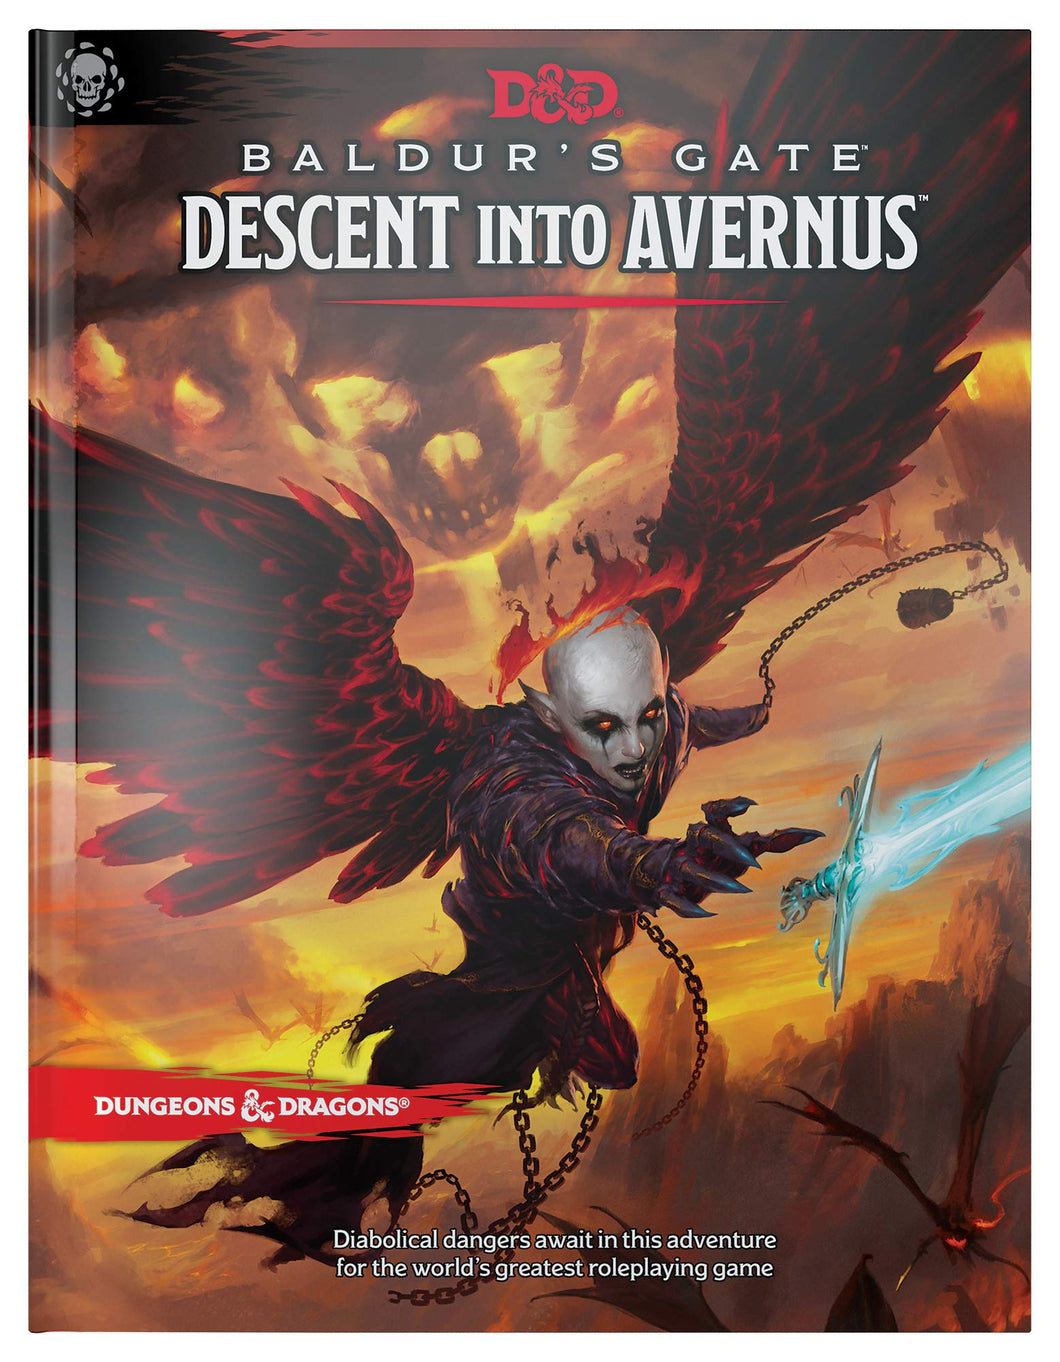 D&D Balders Gate Decent Into Avernus